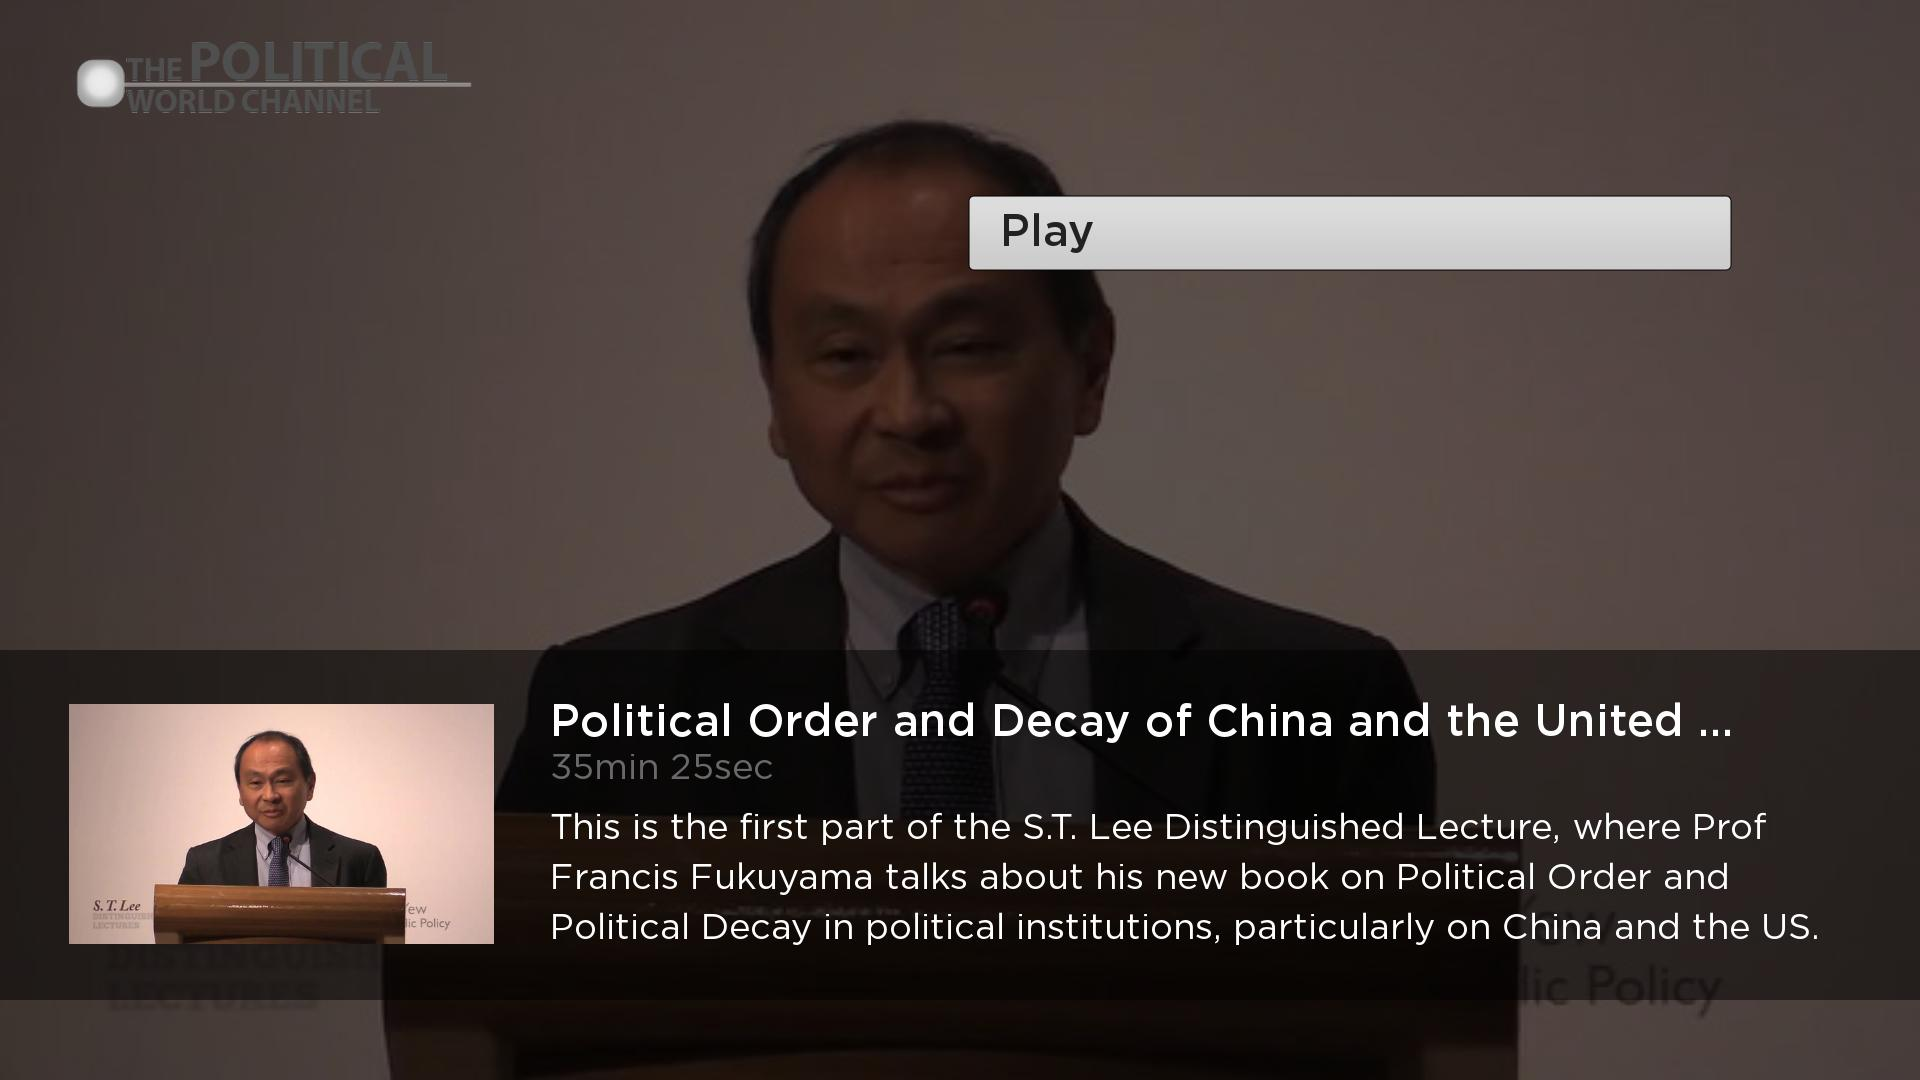 The Political World Channel Screenshot 002